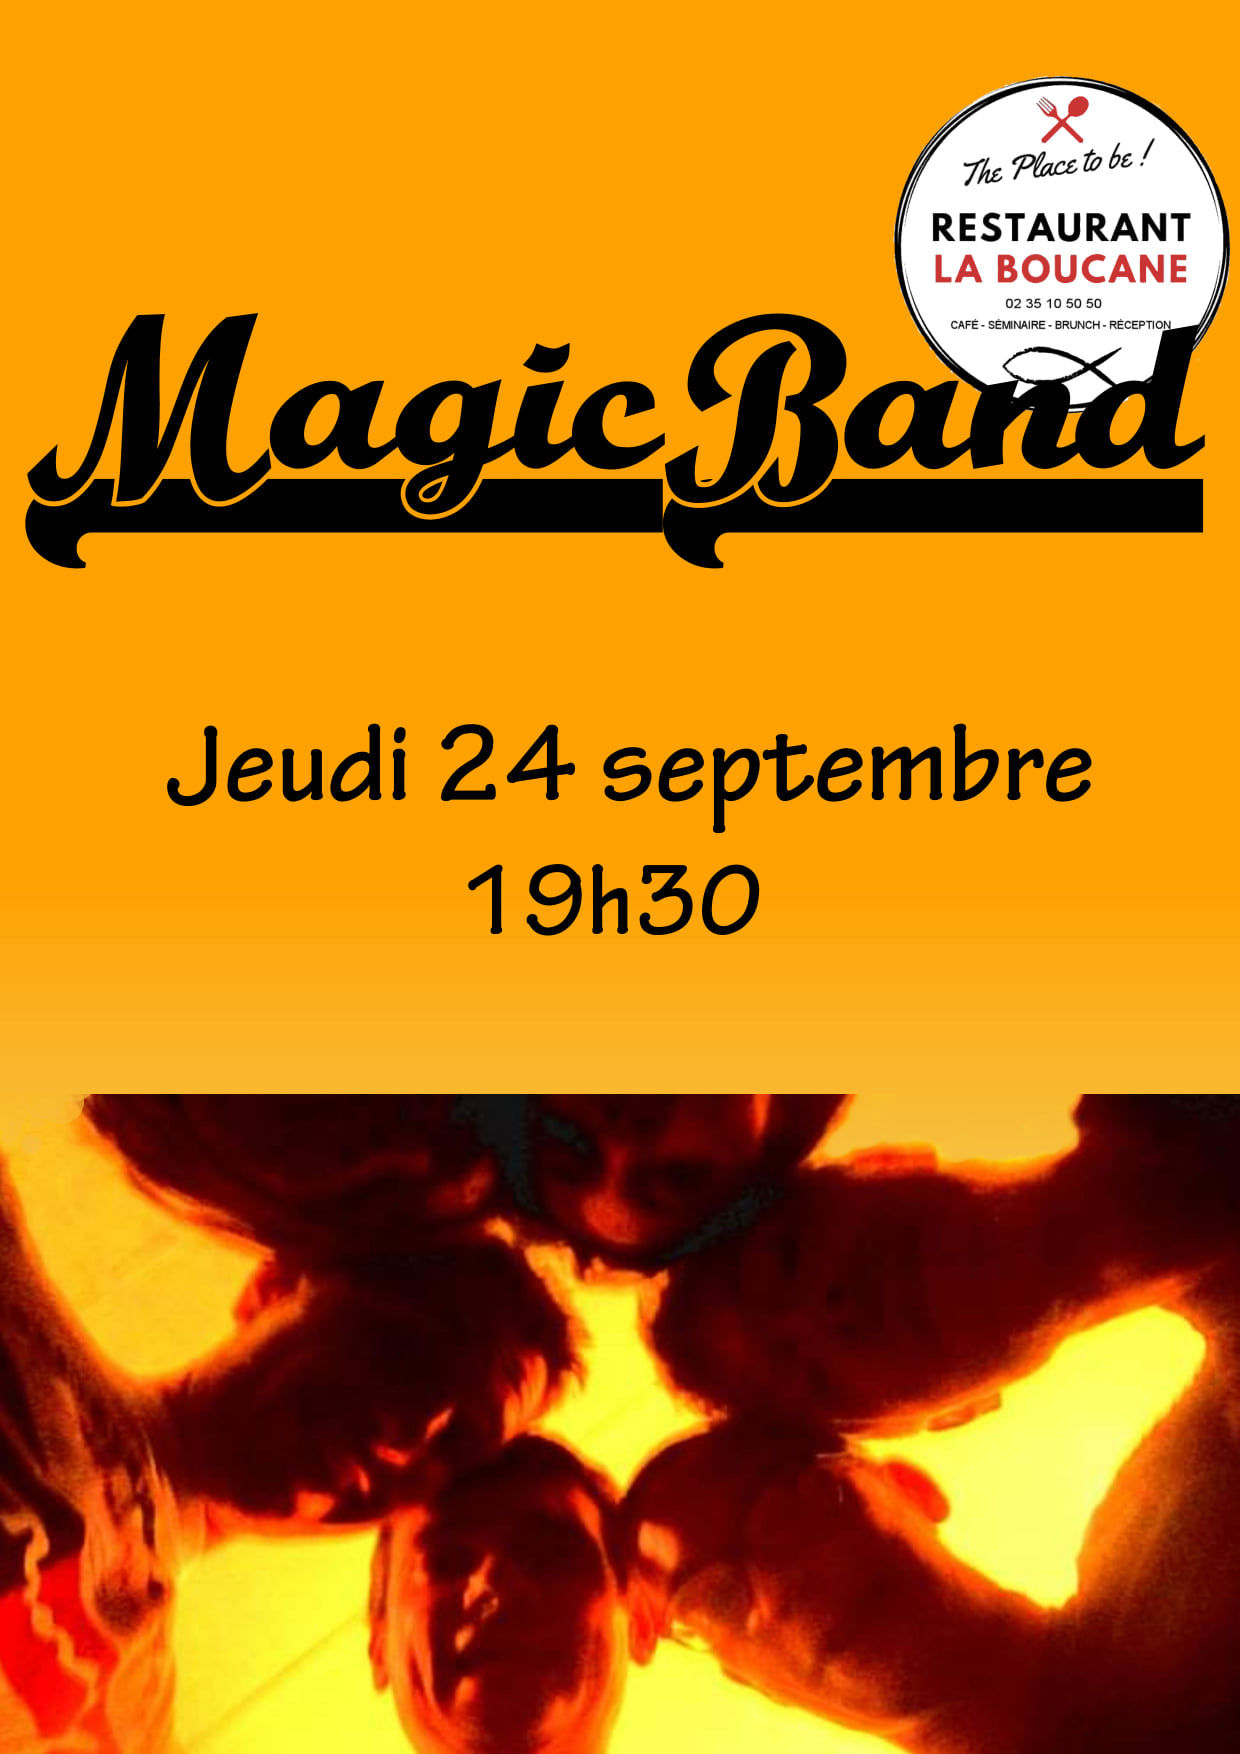 Concert du groupe Magicband